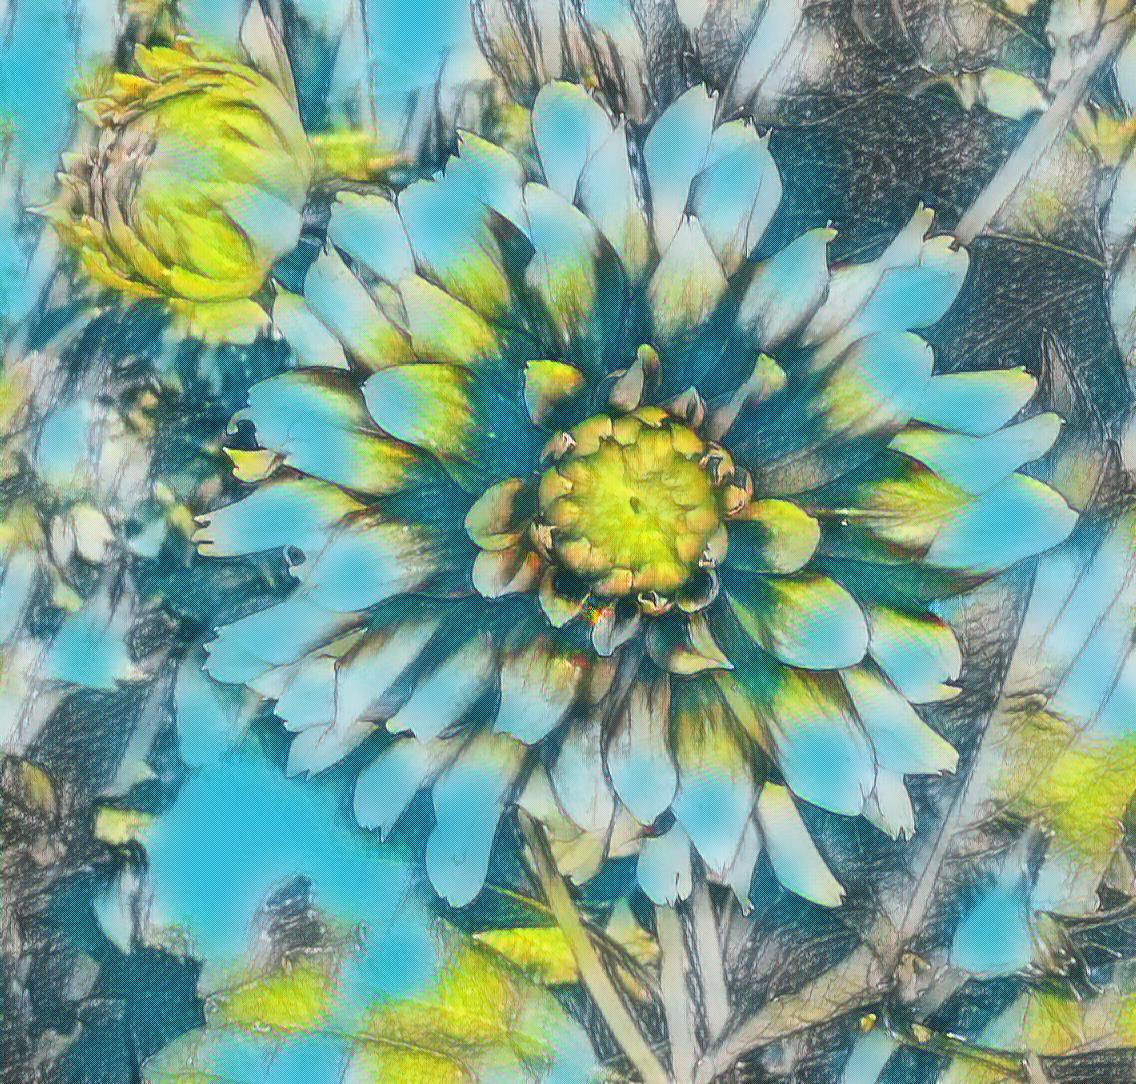 Photo of a dahlia taken by me with Sketch and Fantasy effects on LunaPic.com